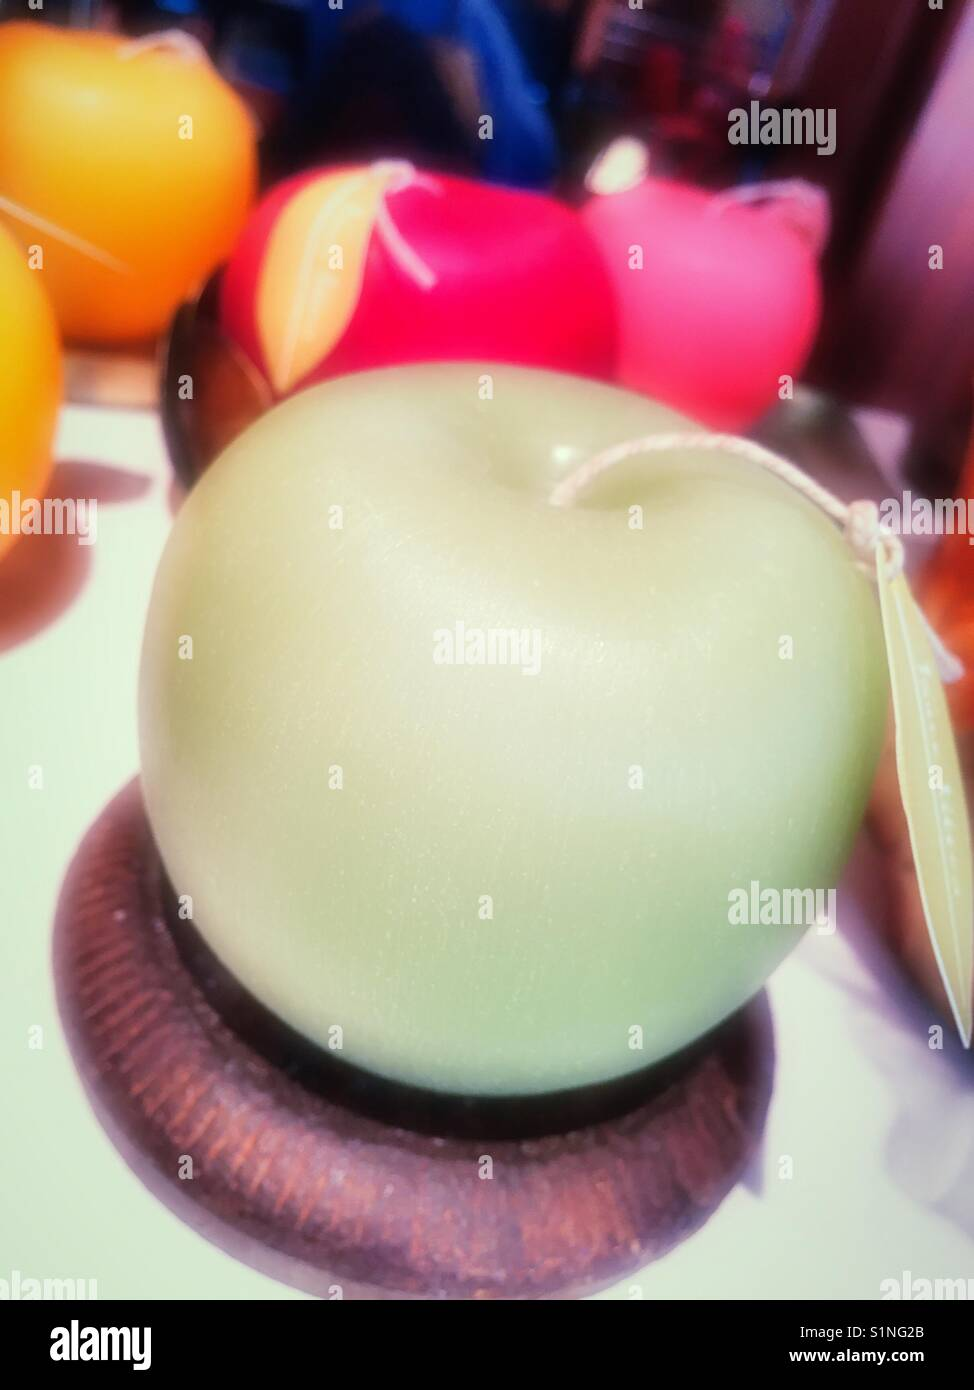 Wax candle in the shape of a green apple, USA - Stock Image